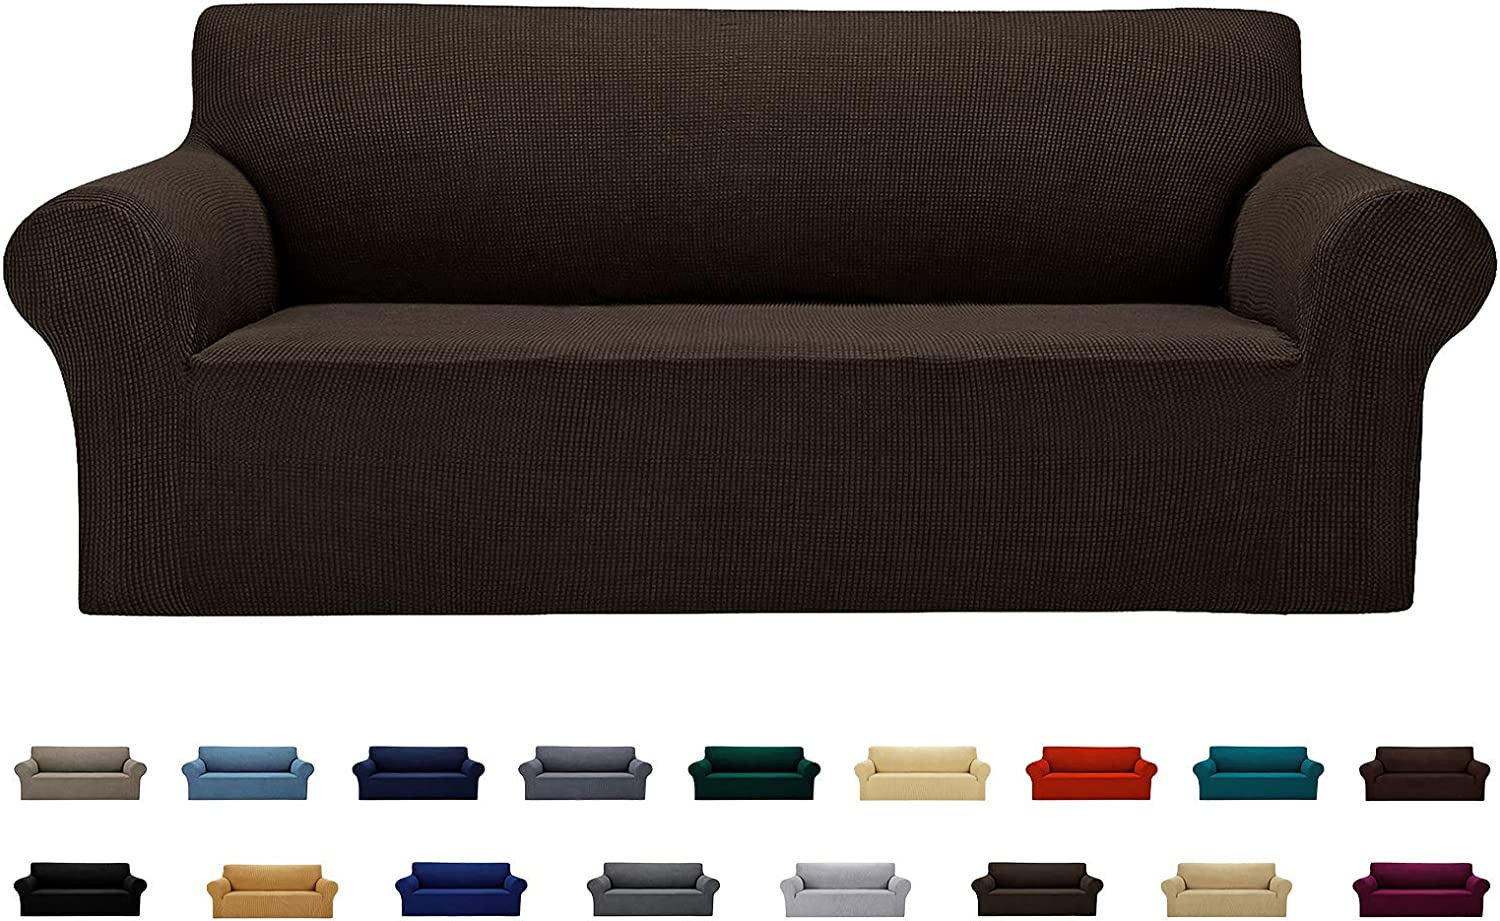 AlGaiety Stretch Sofa Cover Slipcover, Furniture Protector Spandex 1-Piece Couch Coat(80